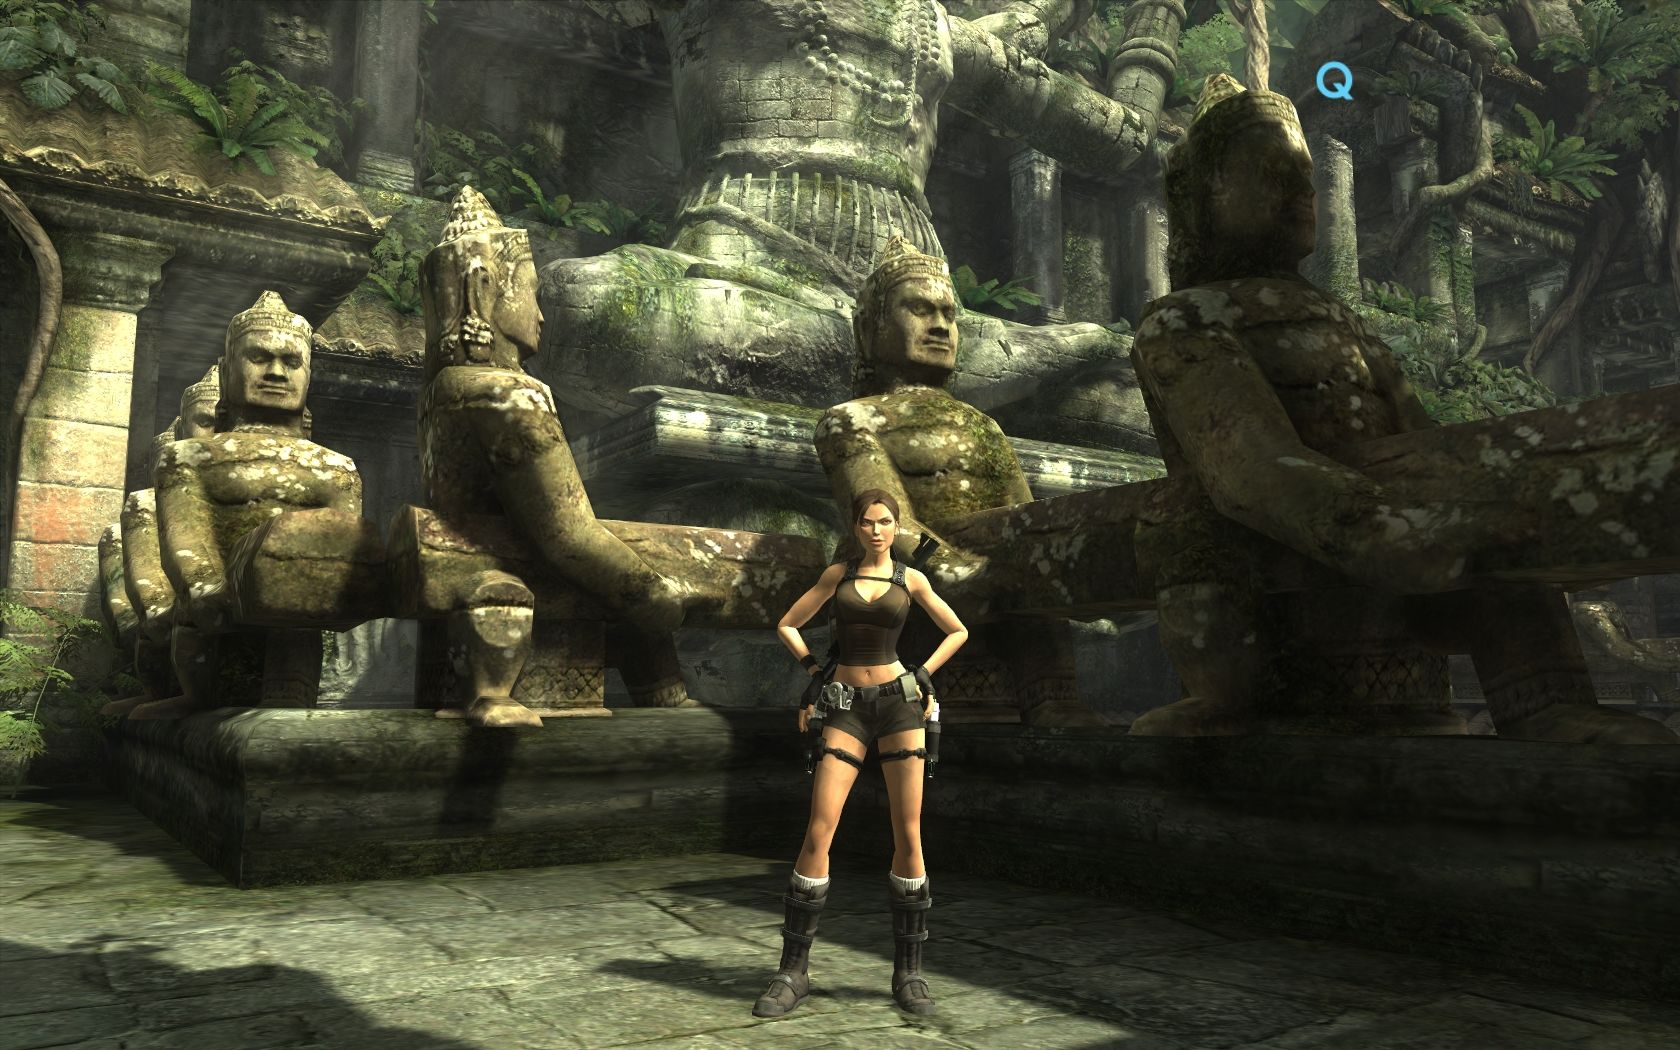 графика в игре Tomb Raider: Underworld